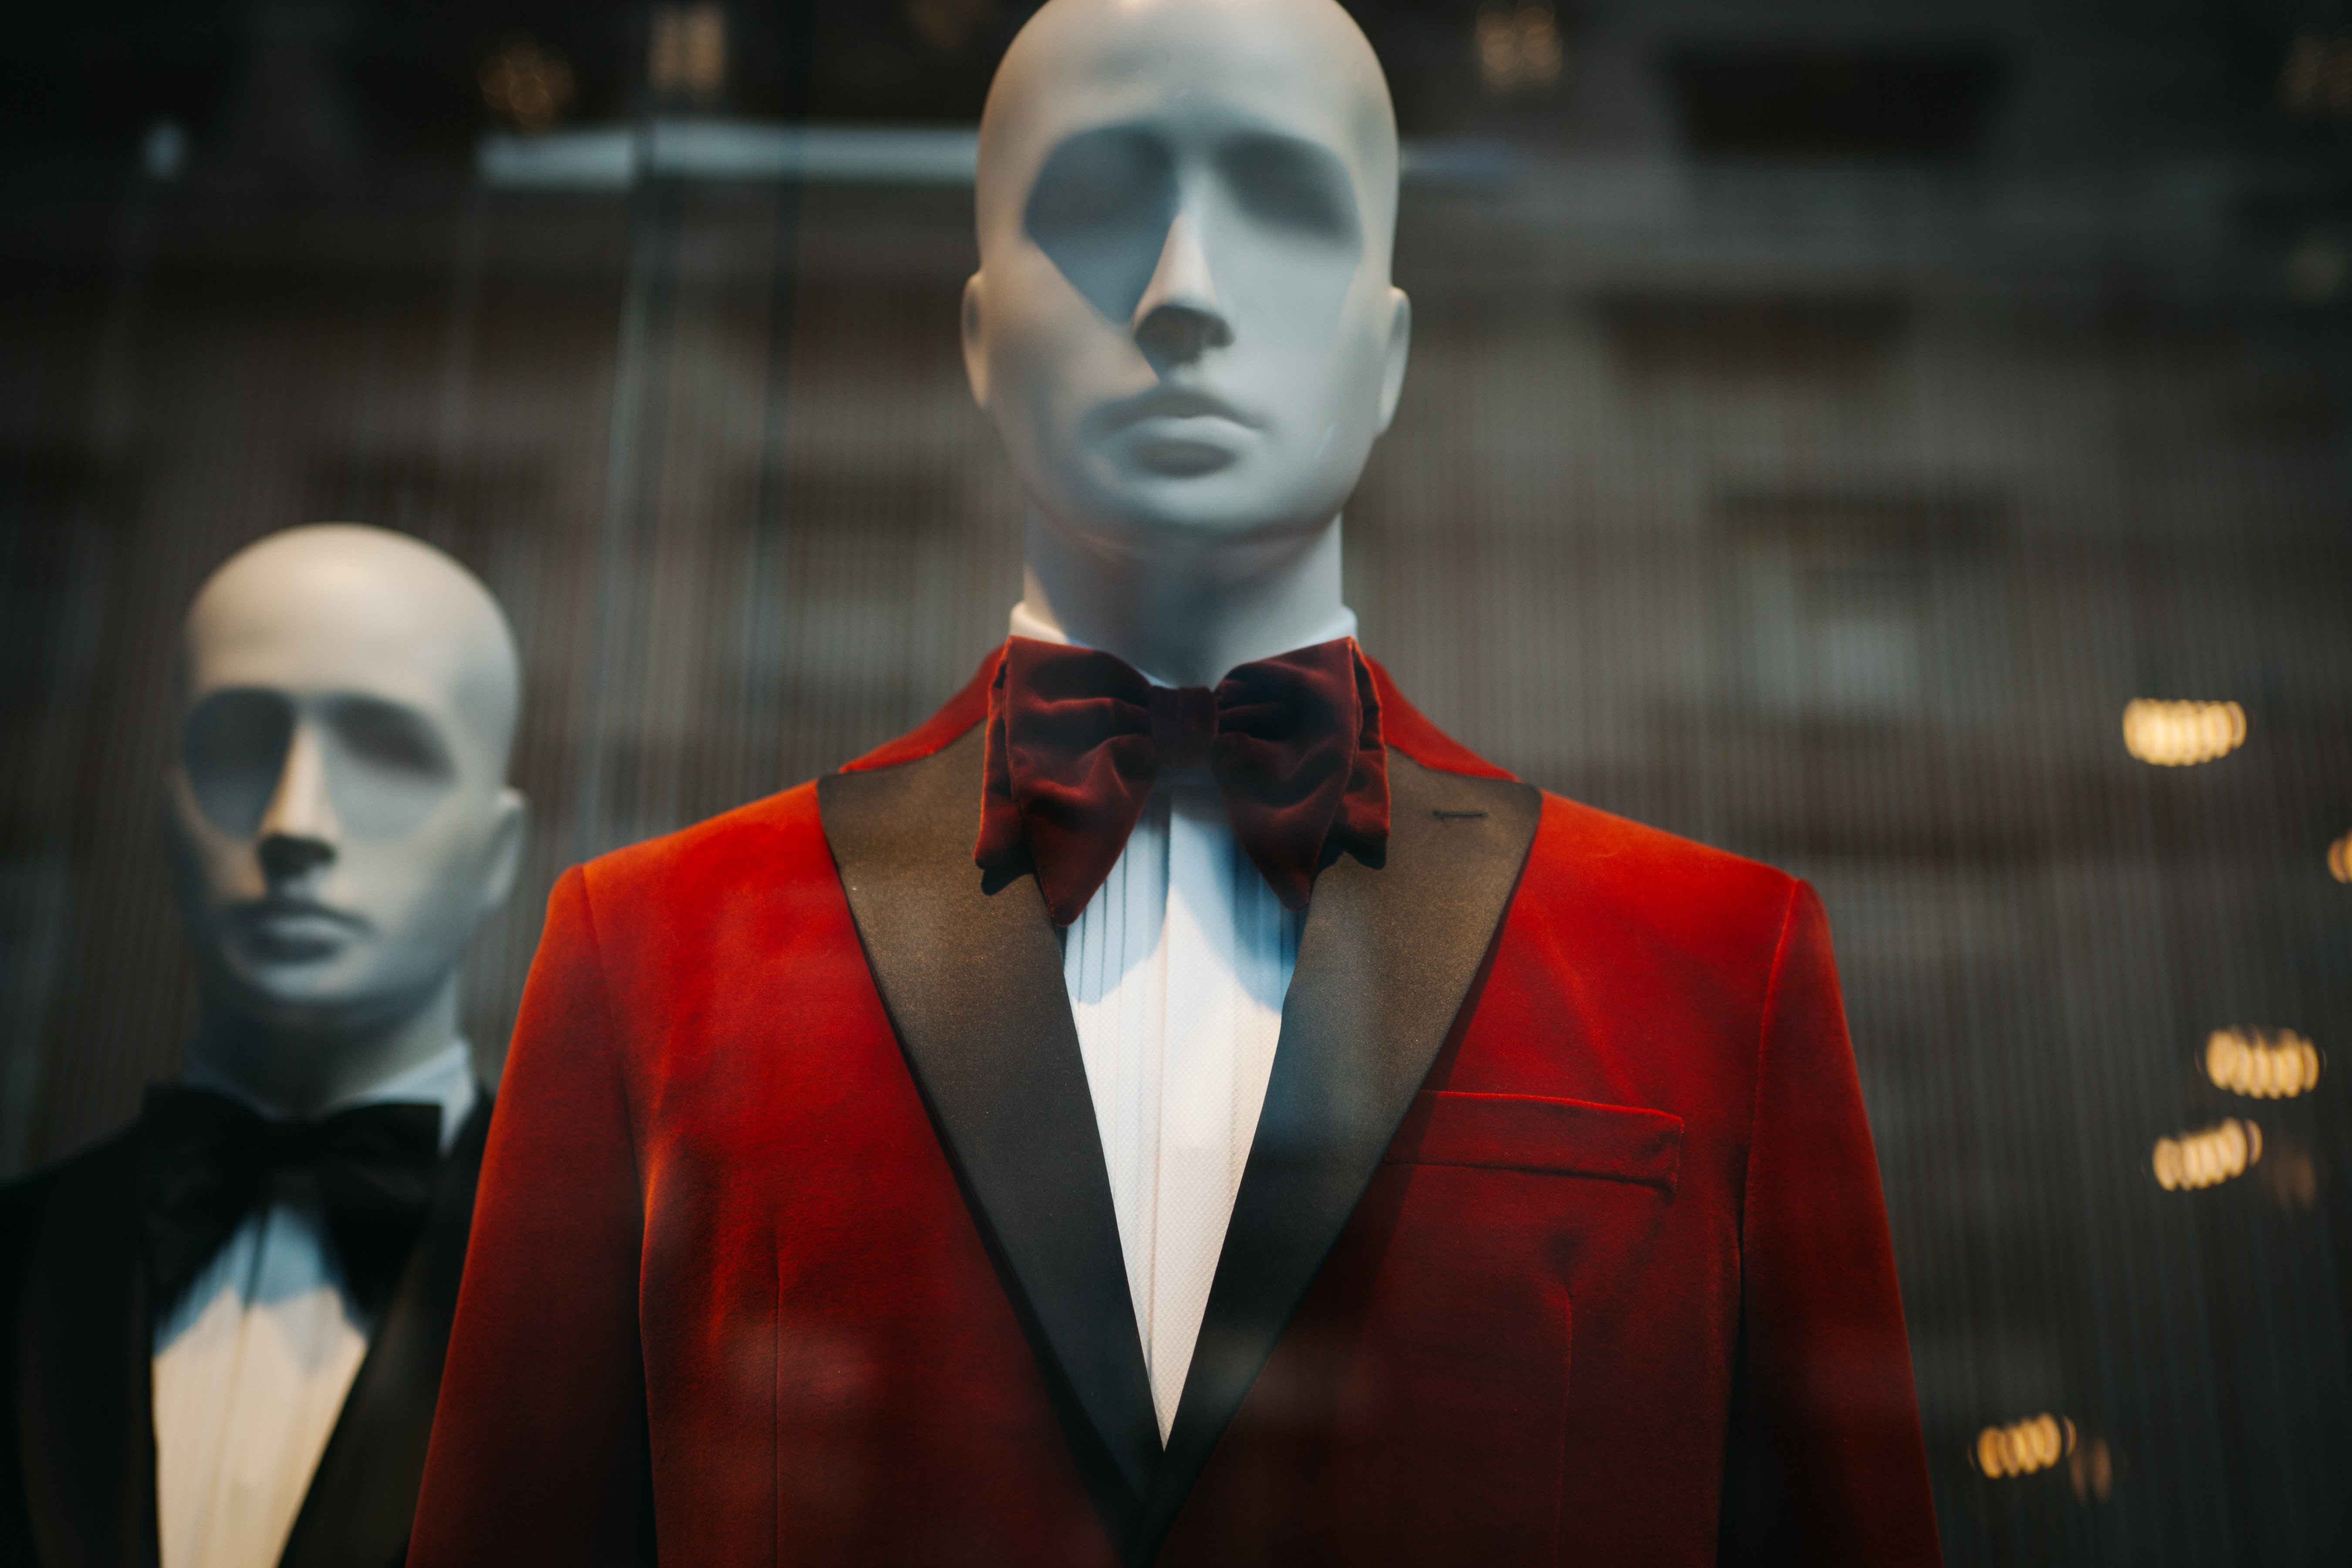 Store mannequins in fashionable tuxedos in a shop window